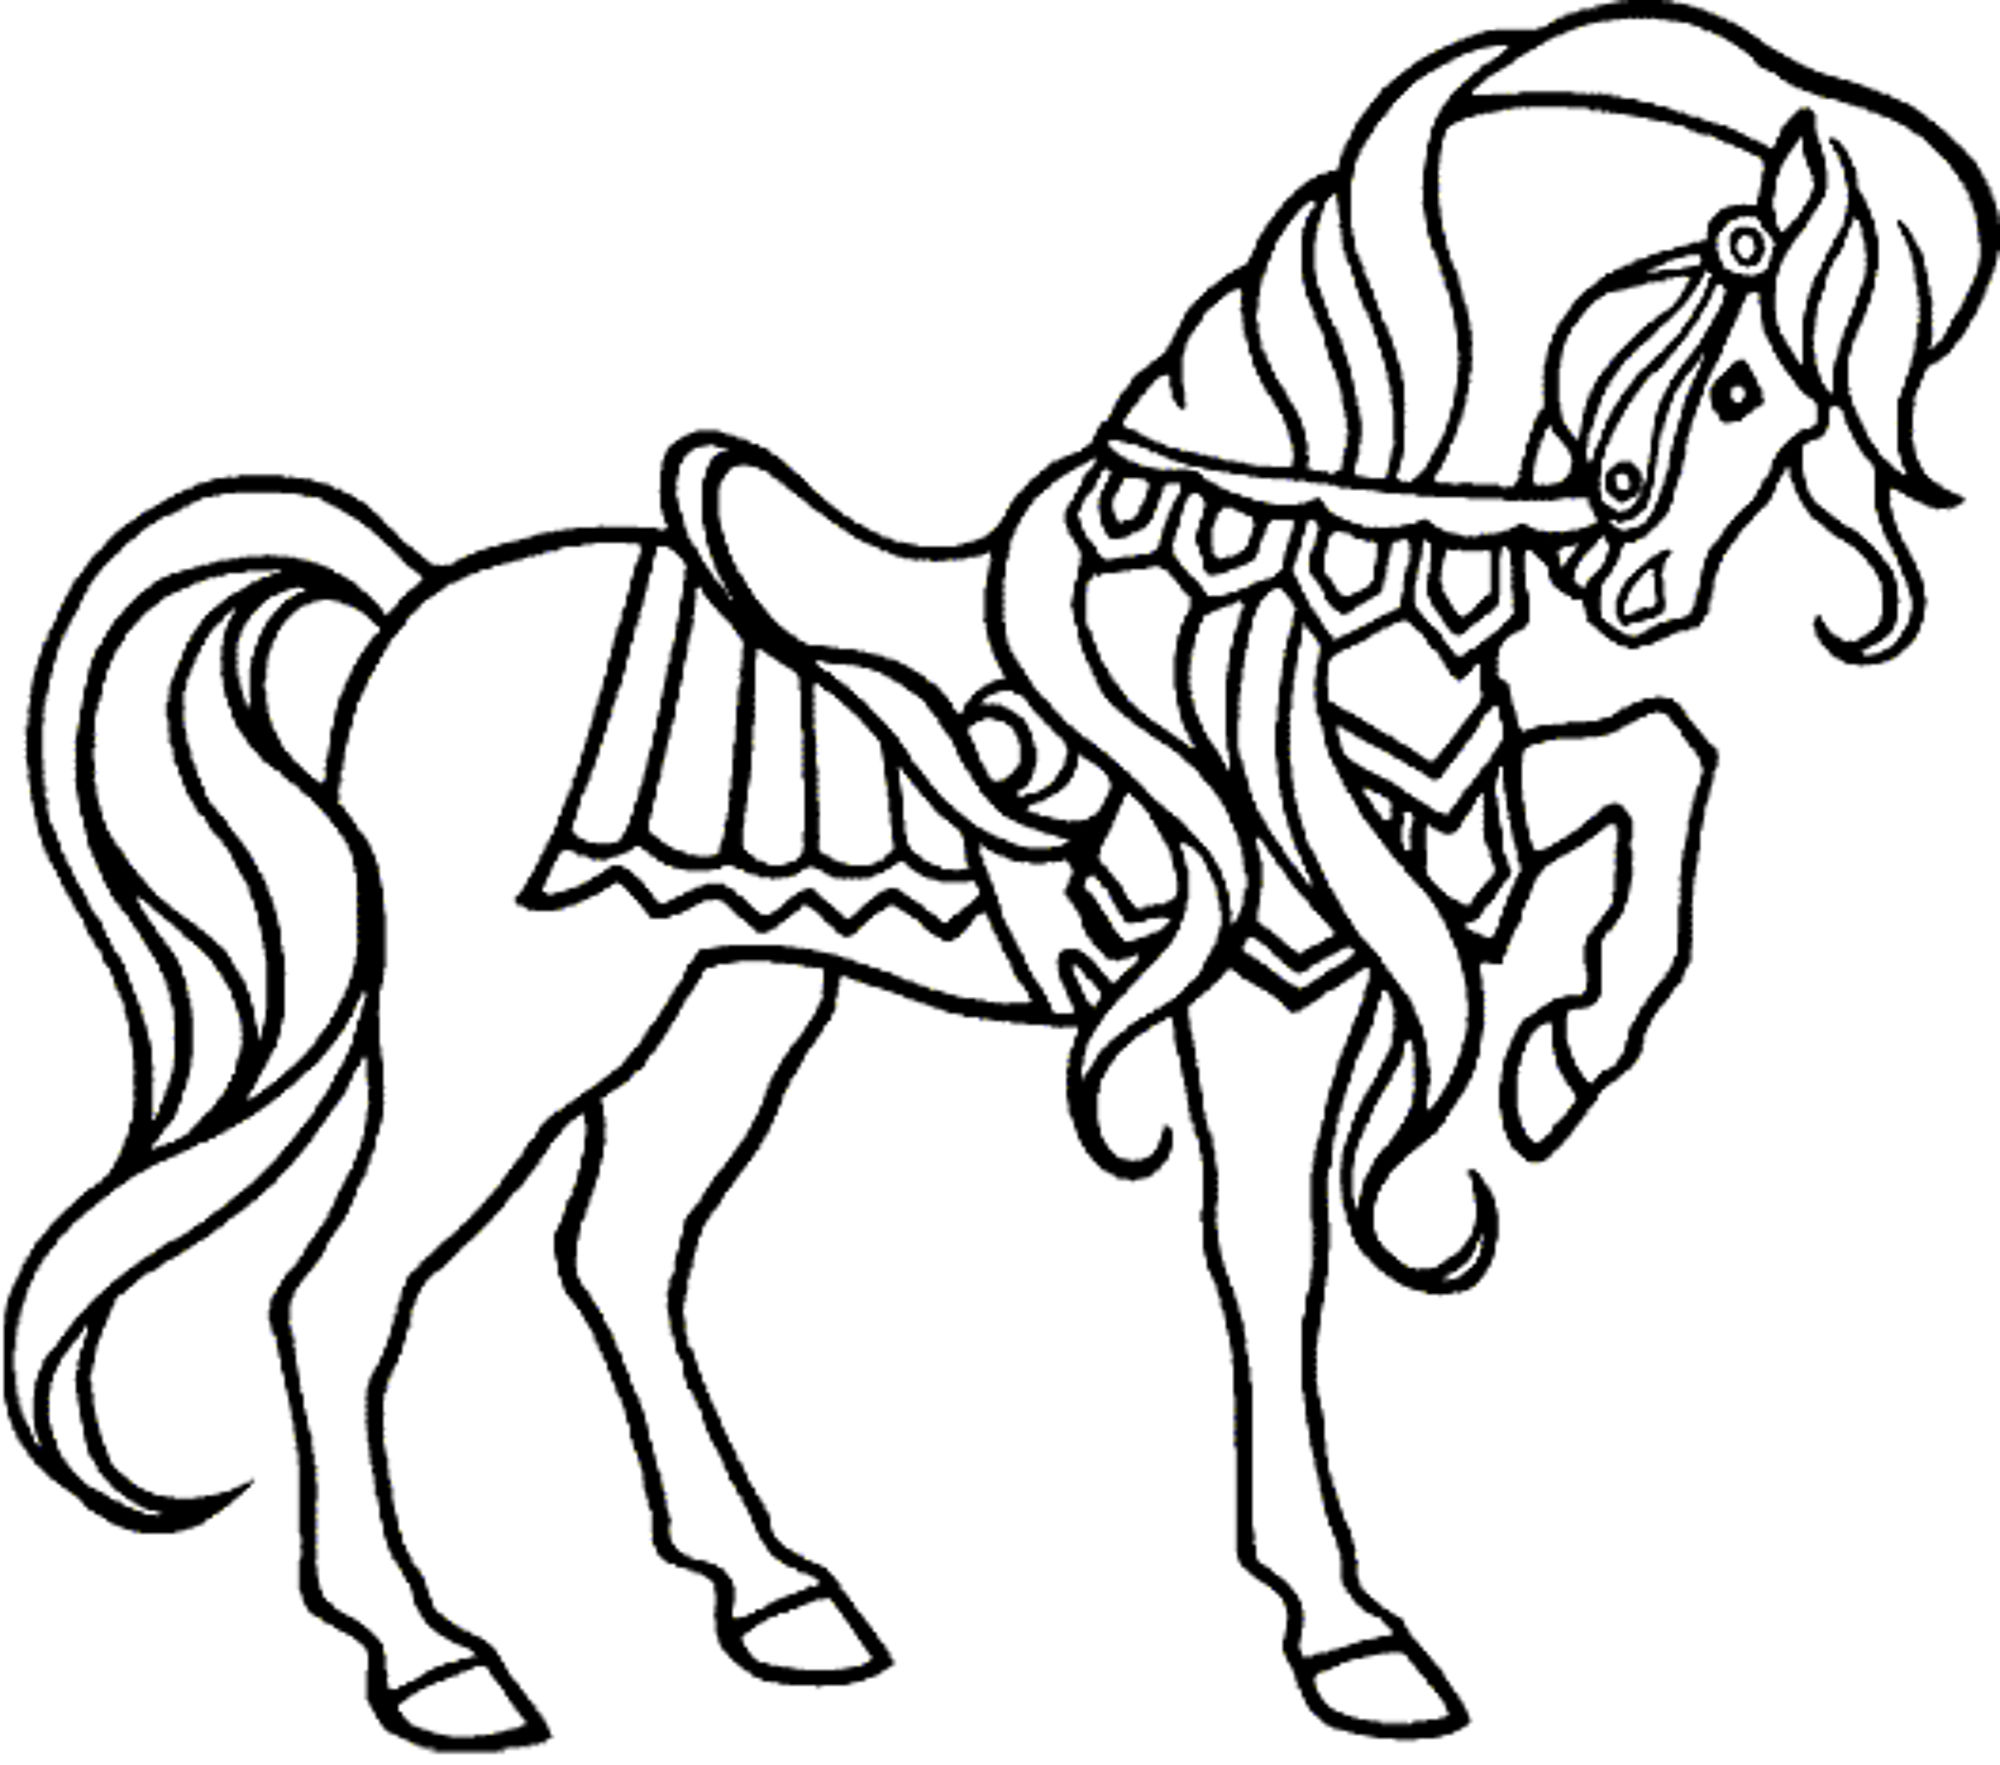 horses for kids drawing at getdrawings com free for personal use